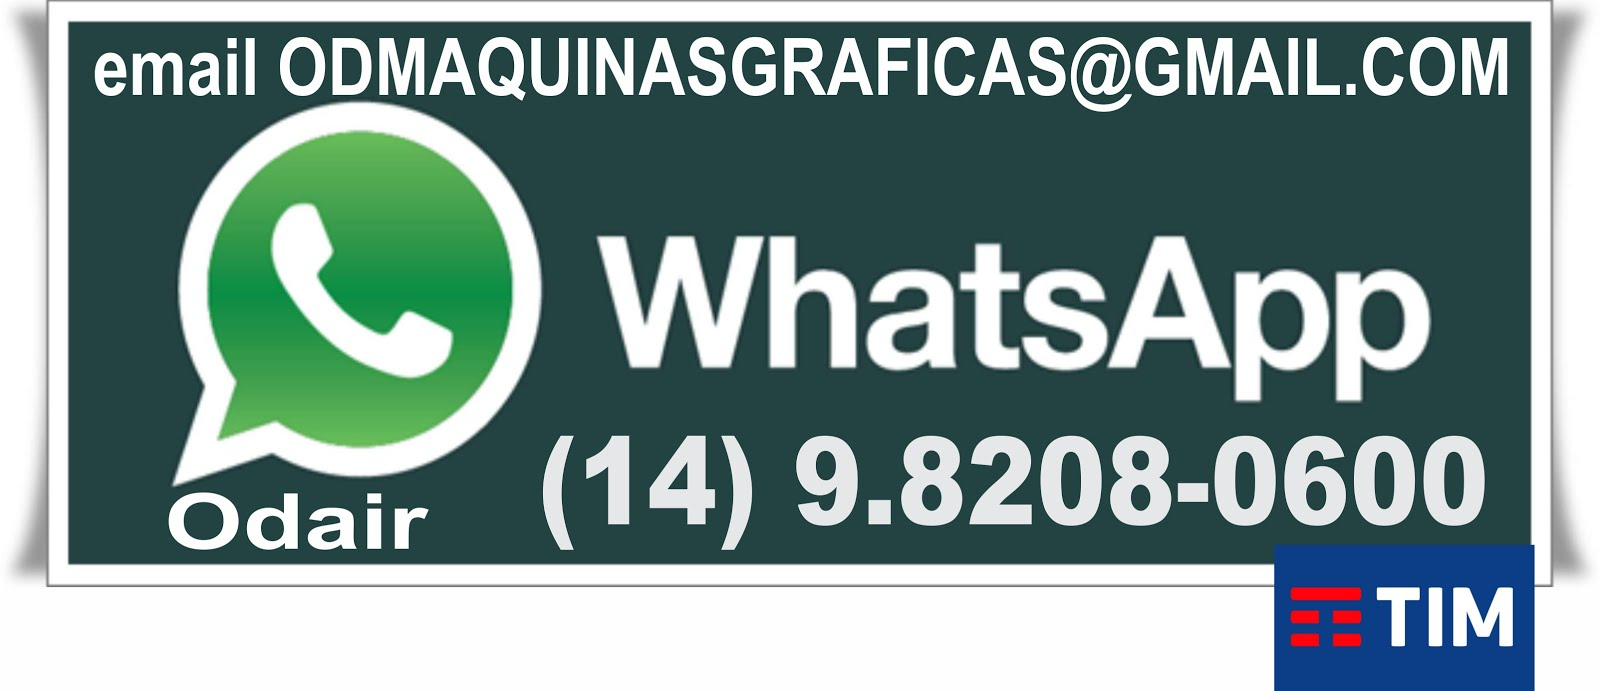 WhatsApp 14 9.8208-0600